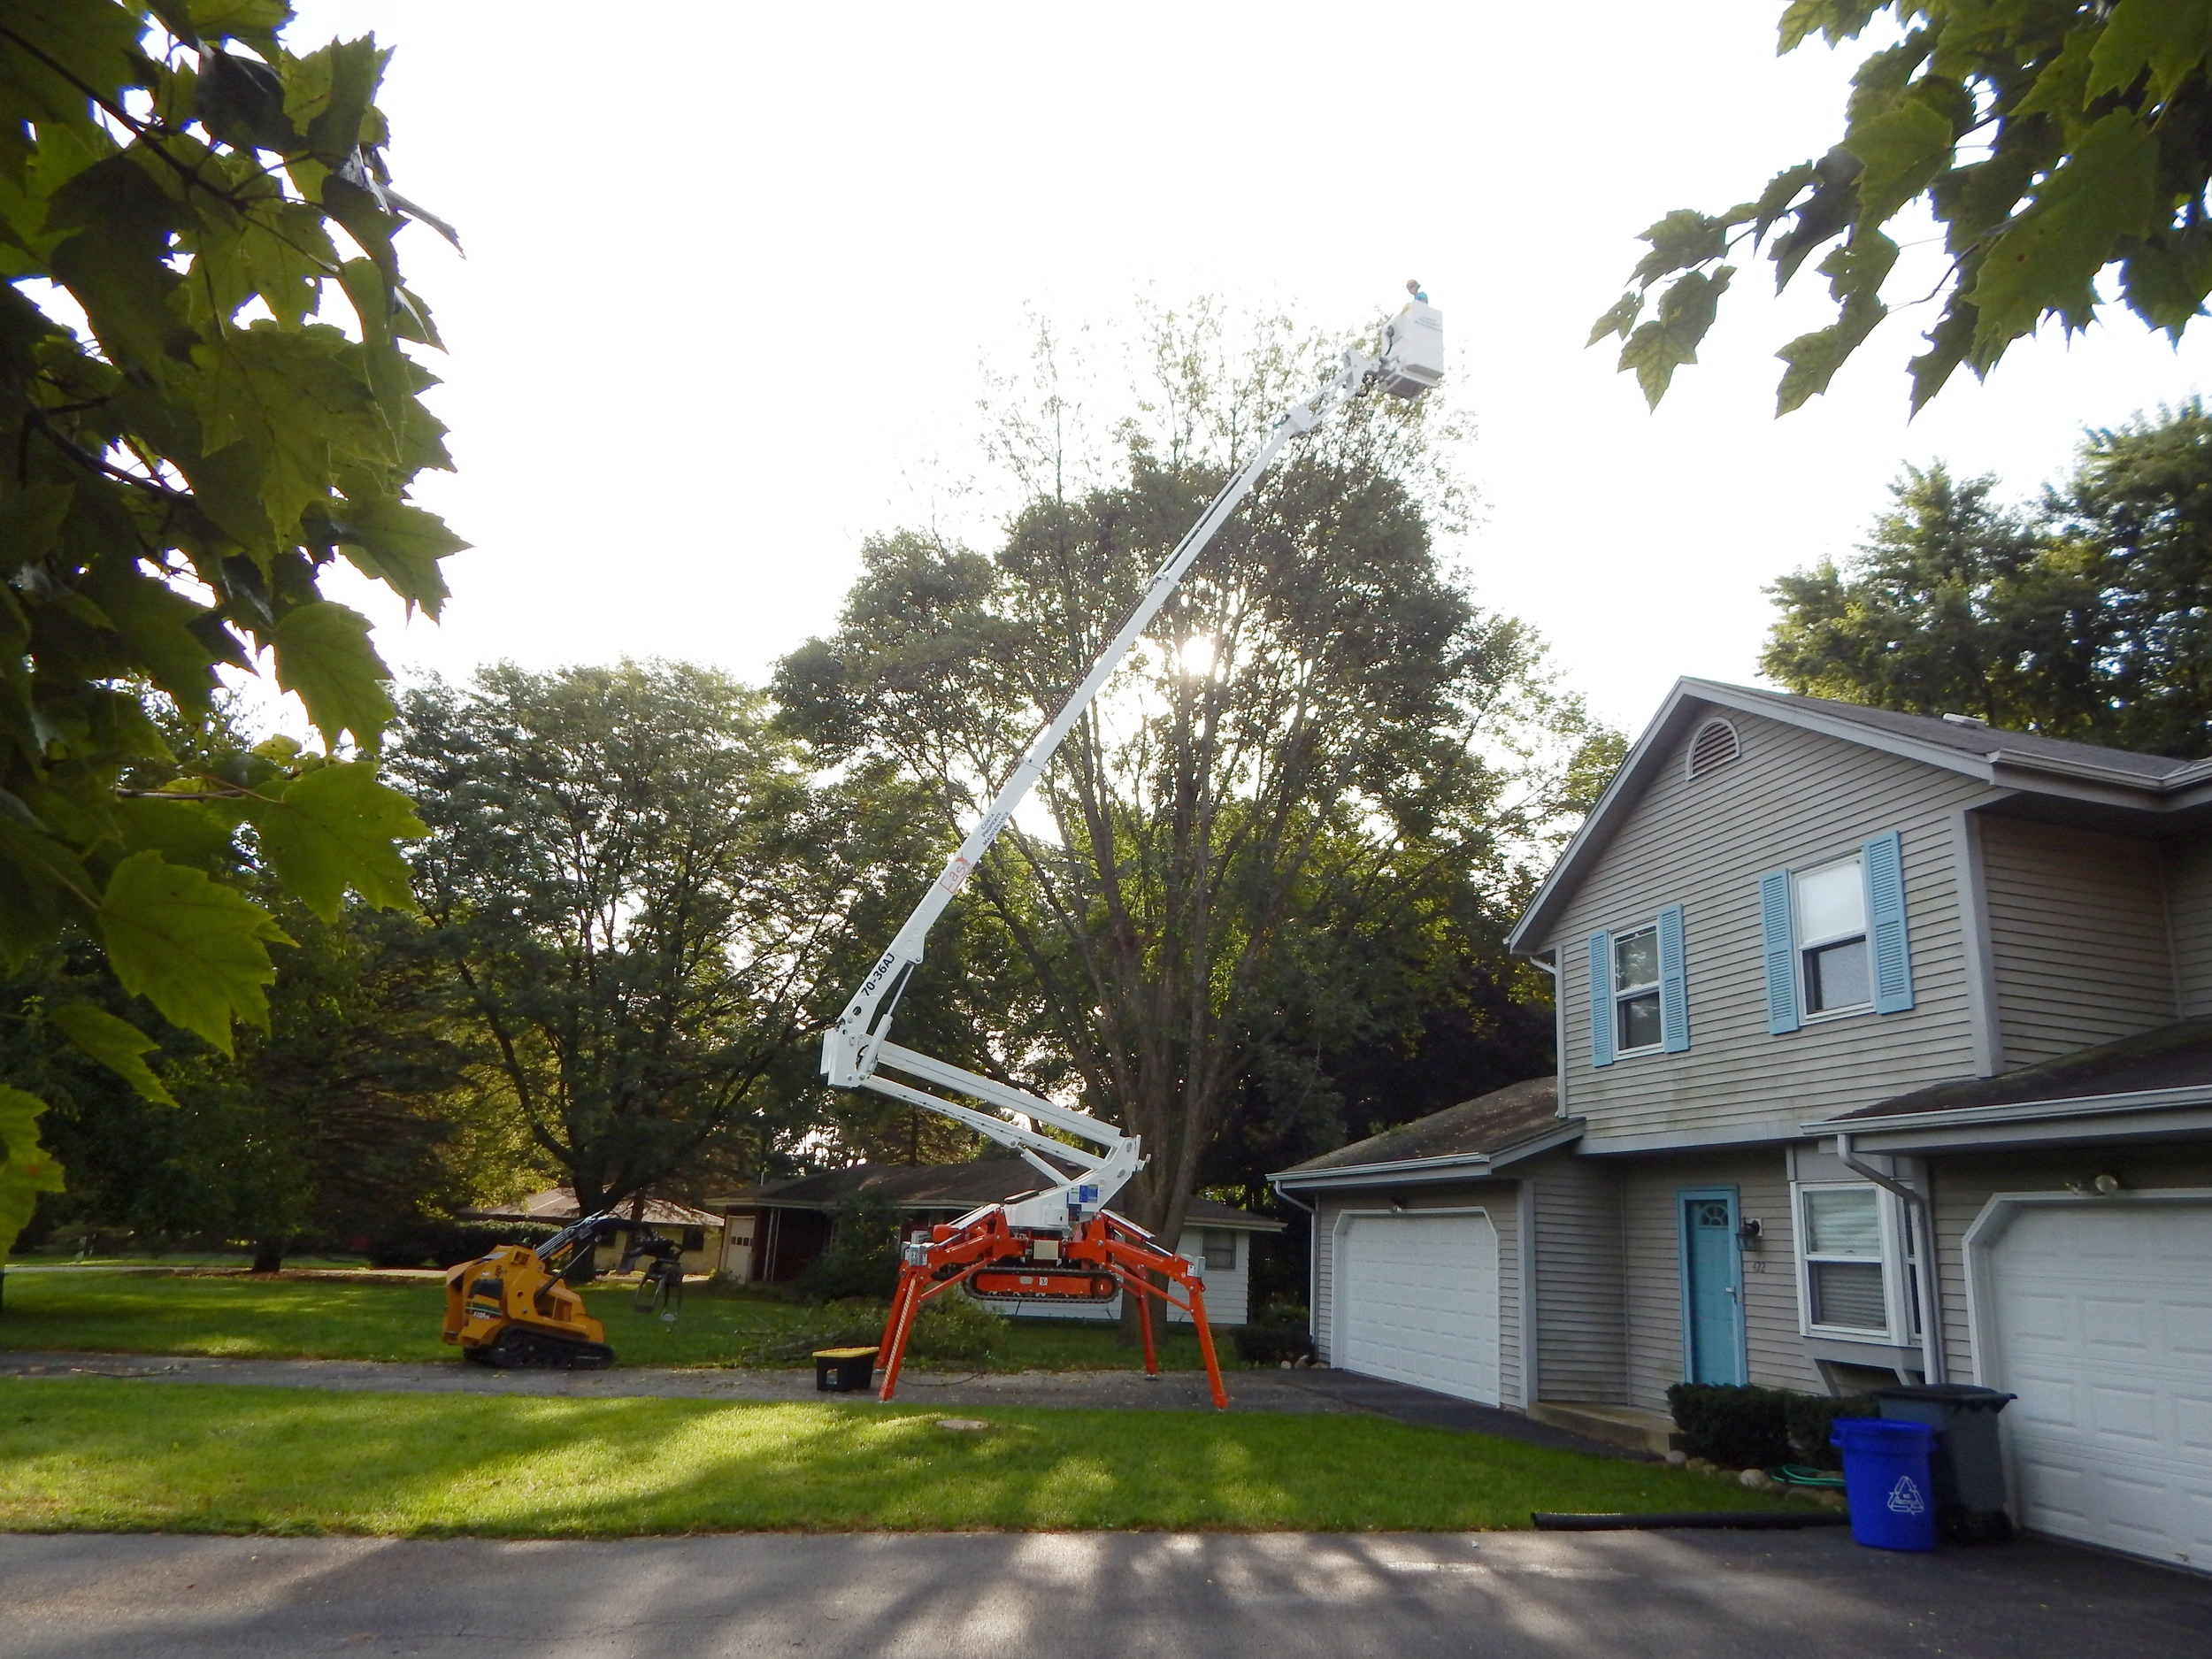 removal of tree due to emerald ash borer